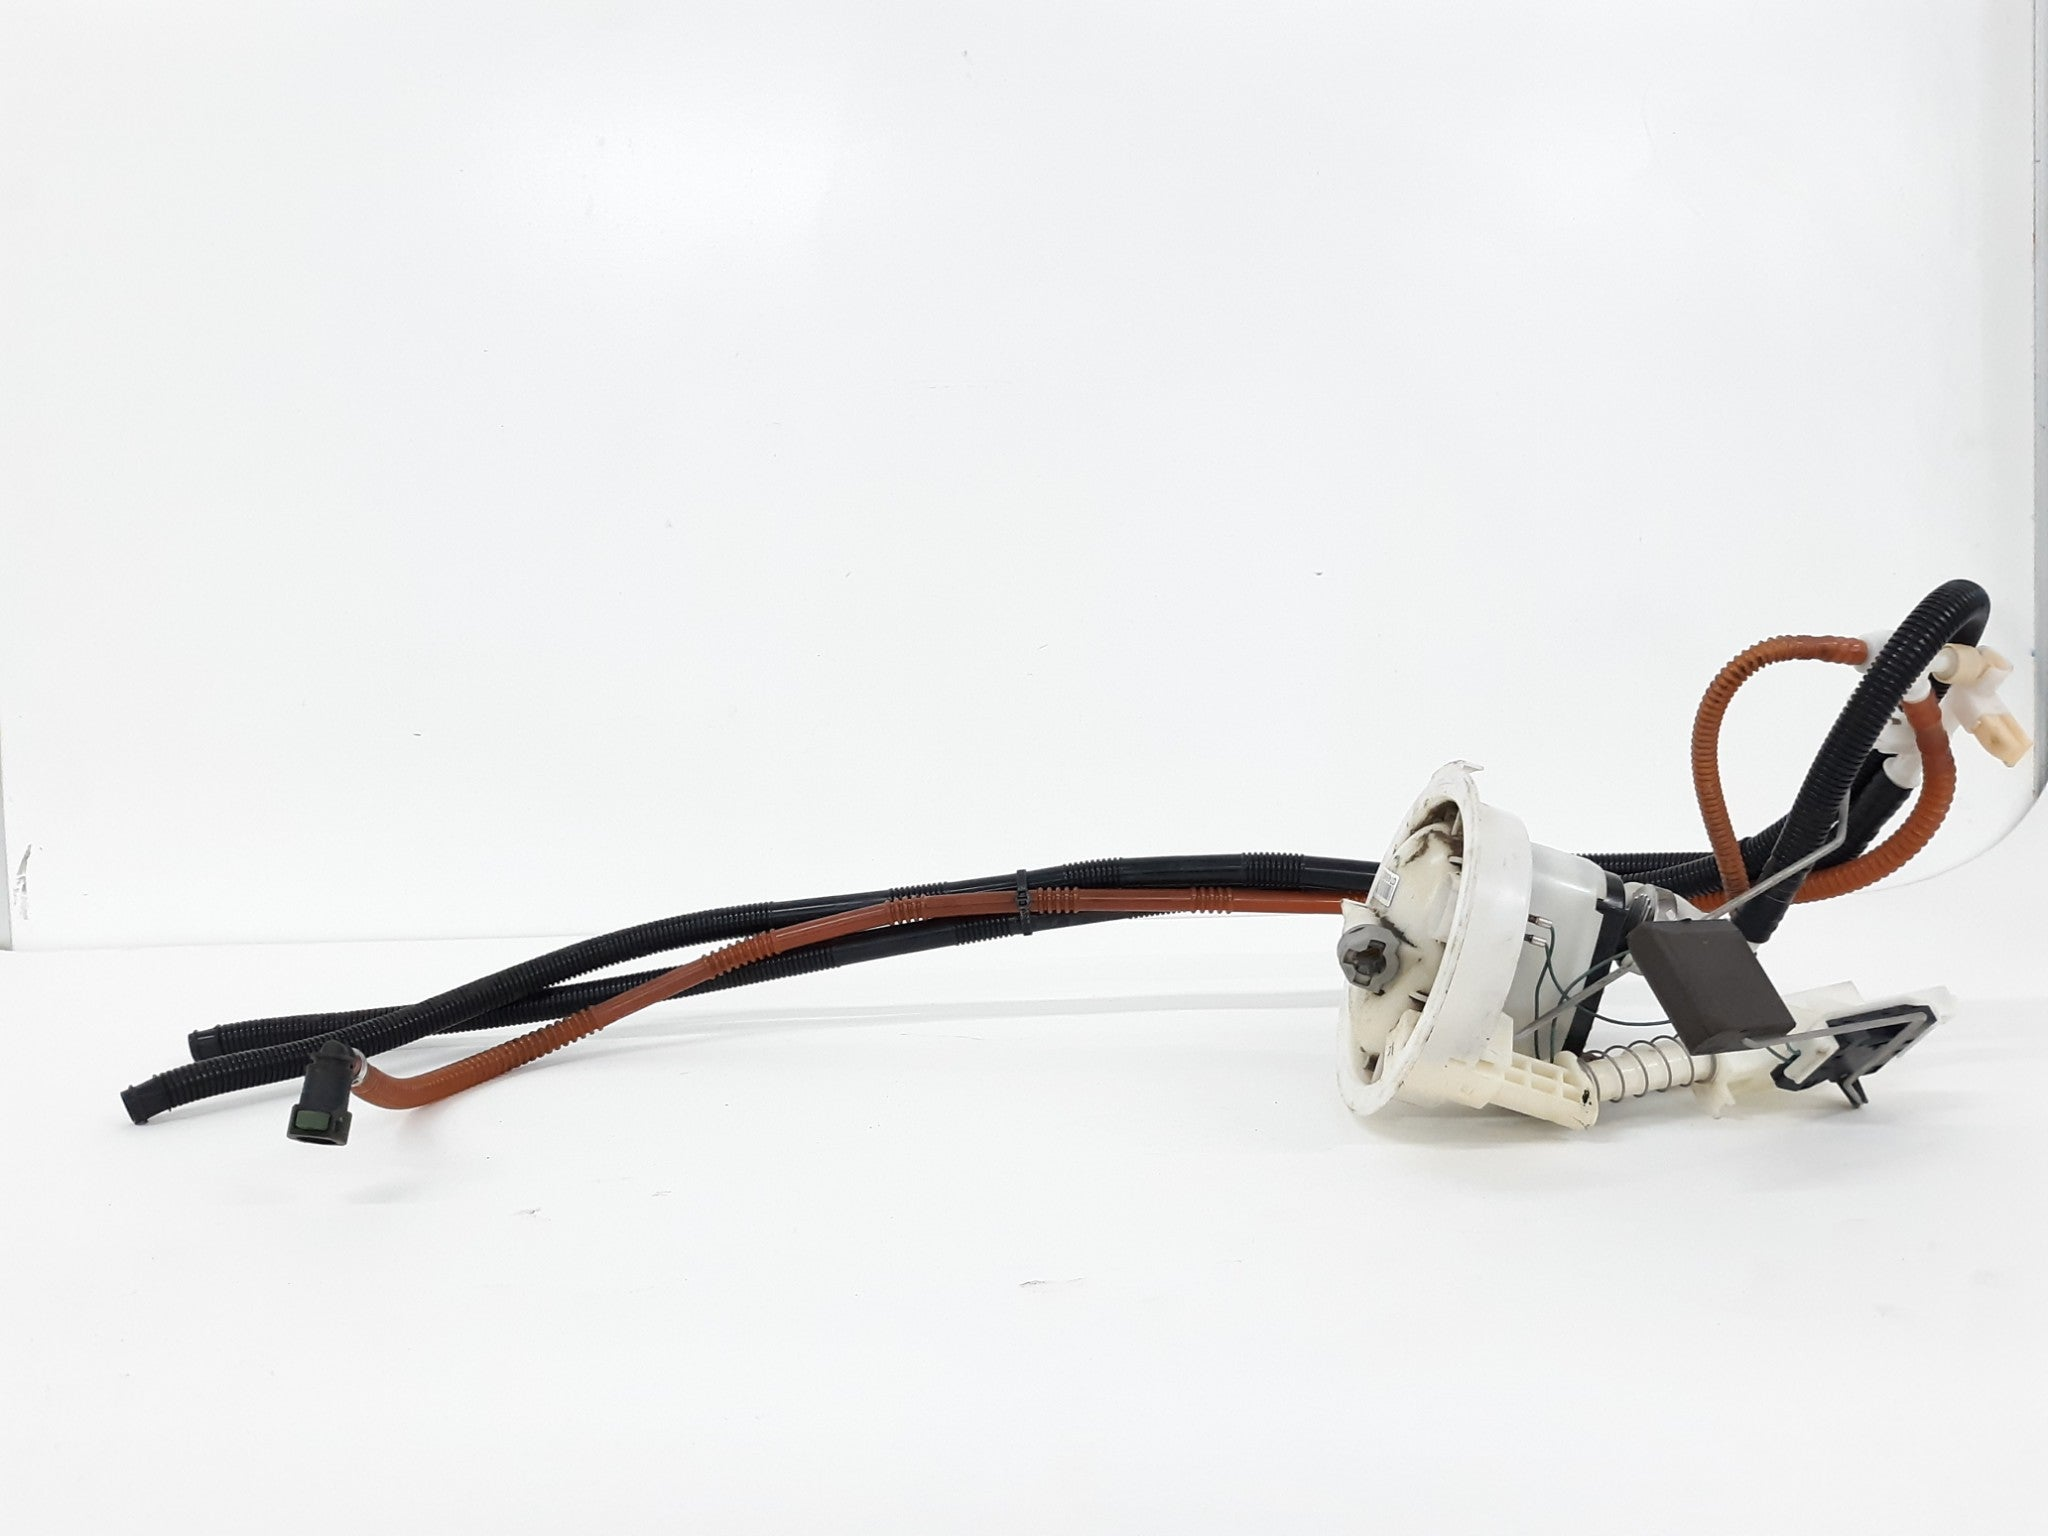 2001-2006 BMW 325i 330i 320i Fuel Filter with Pressure Regulator Tank Gauge OEM - Click Receive Auto Parts